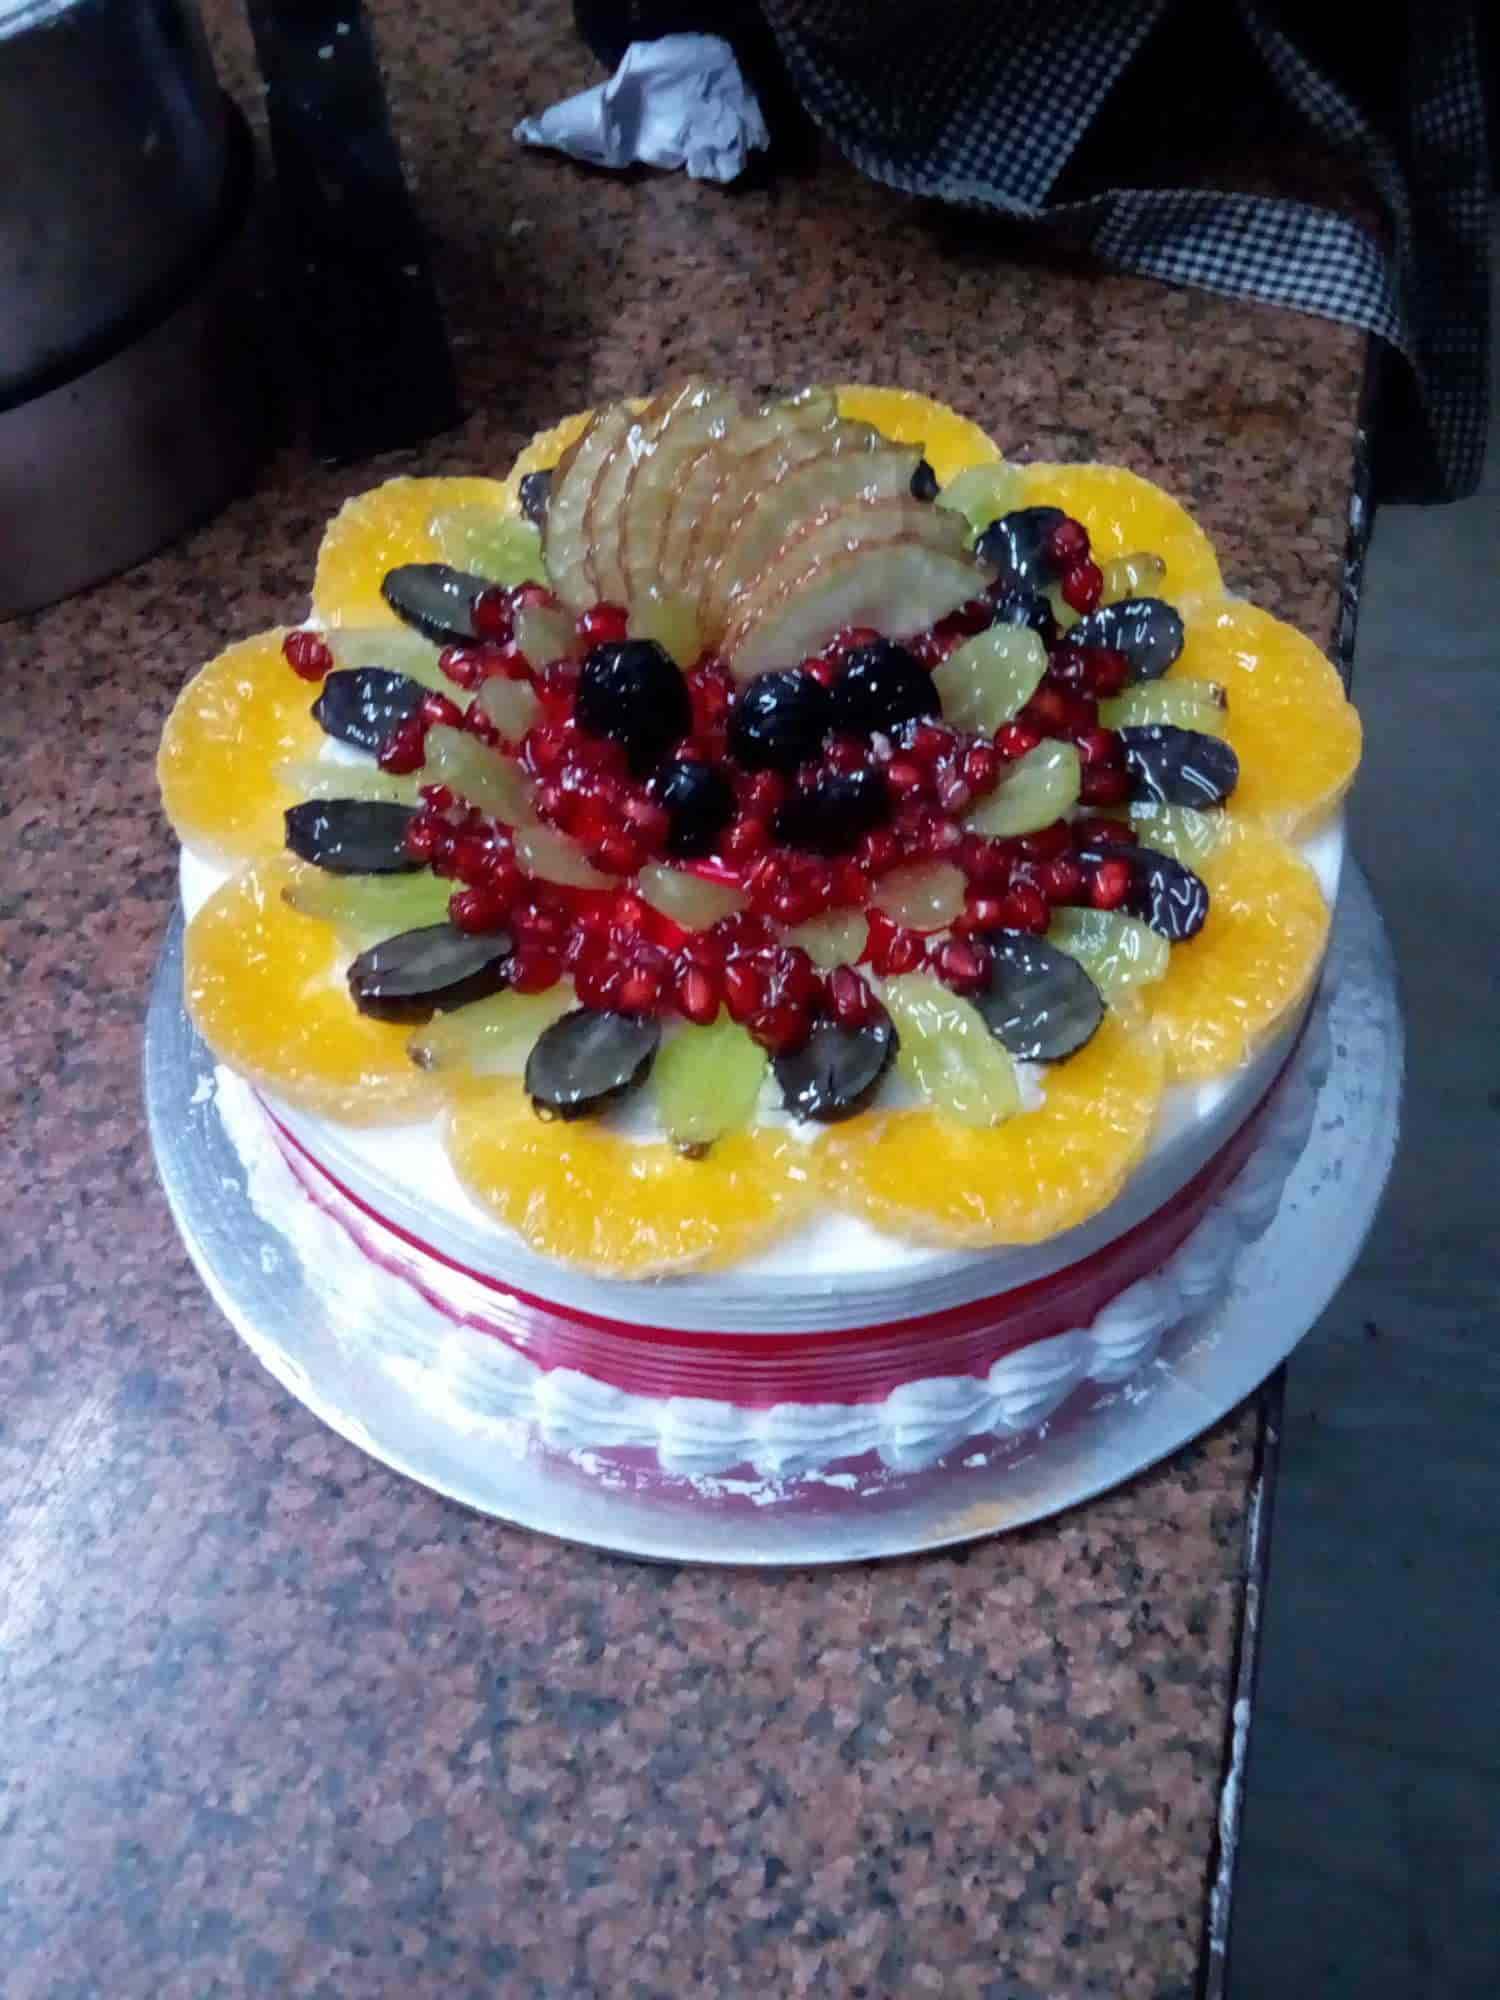 Cakes U0026 Cookies, South City 1   24 Hours Cake Delivery Services In Gurgaon,  Delhi   Justdial